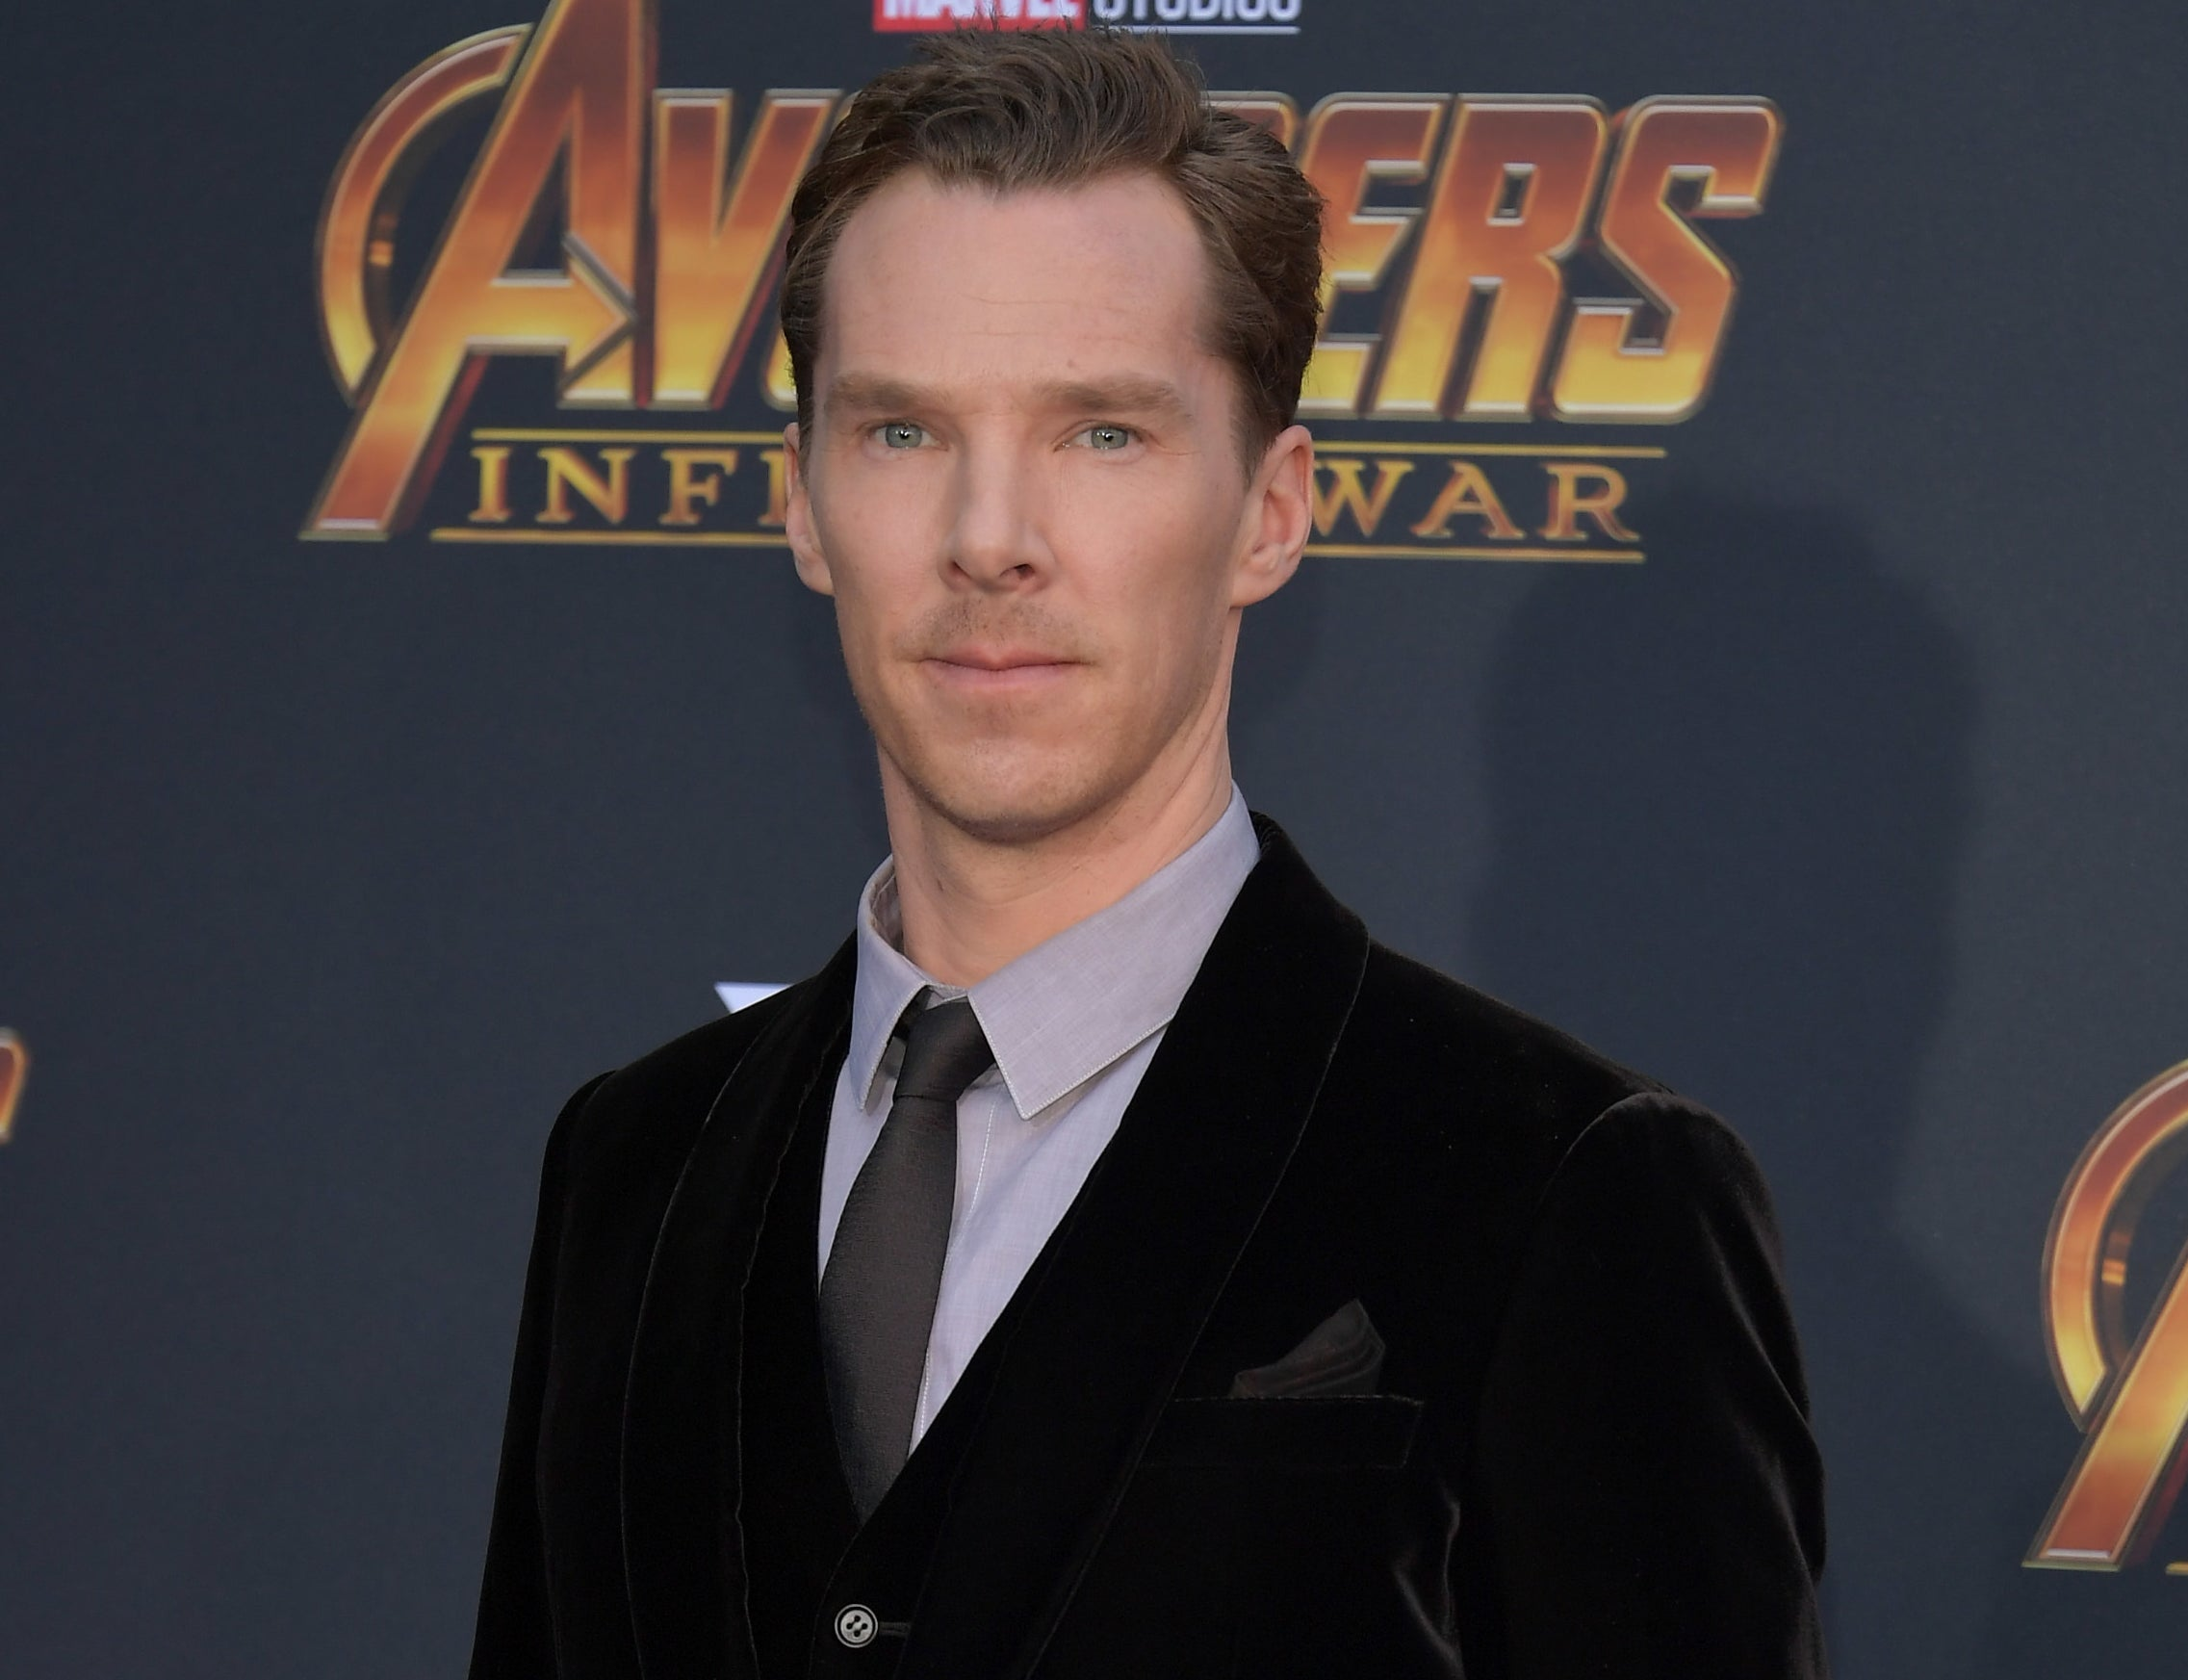 Benedict attends an Avengers premiere